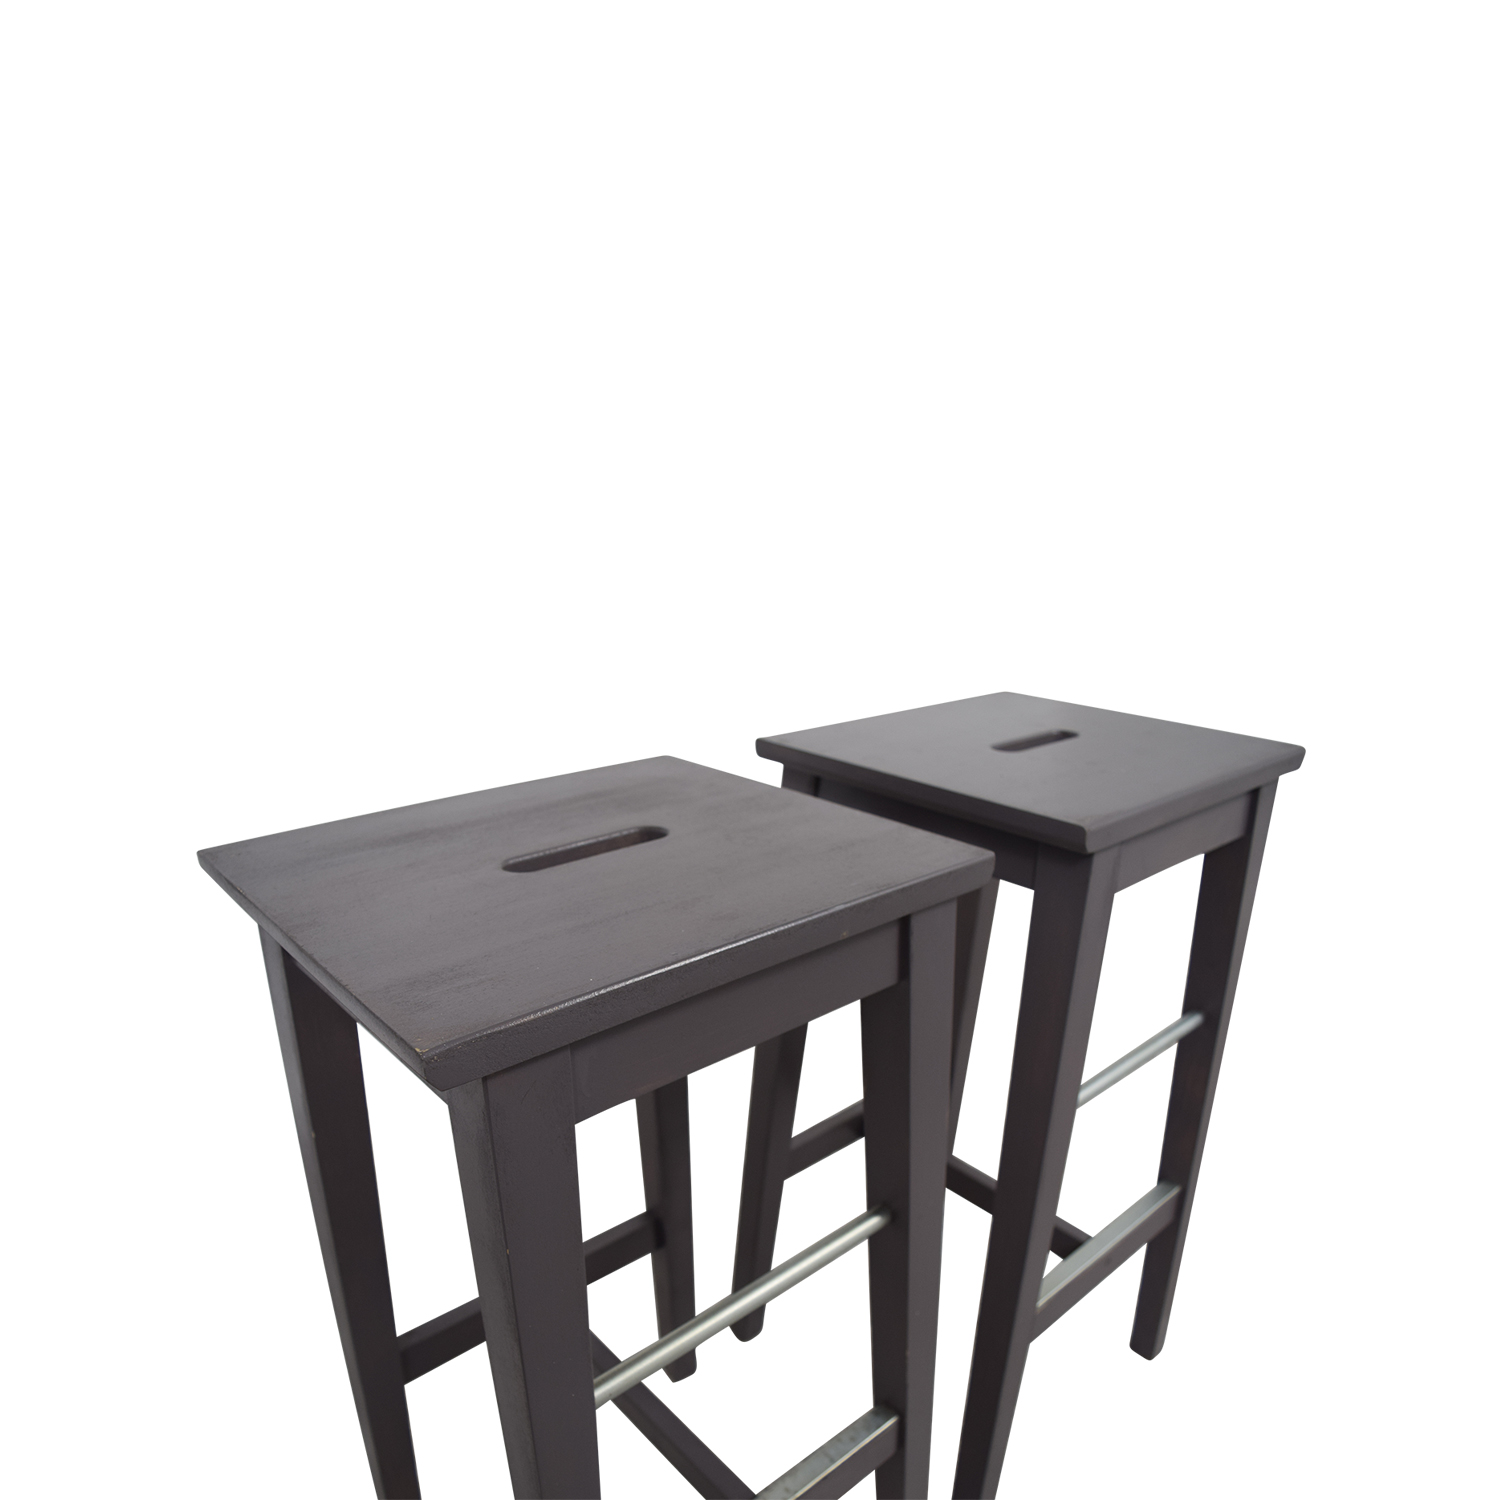 ... IKEA IKEA Bosse Bar Stools Chairs ...  sc 1 st  Furnishare & 40% OFF - IKEA IKEA Bosse Bar Stools / Chairs islam-shia.org